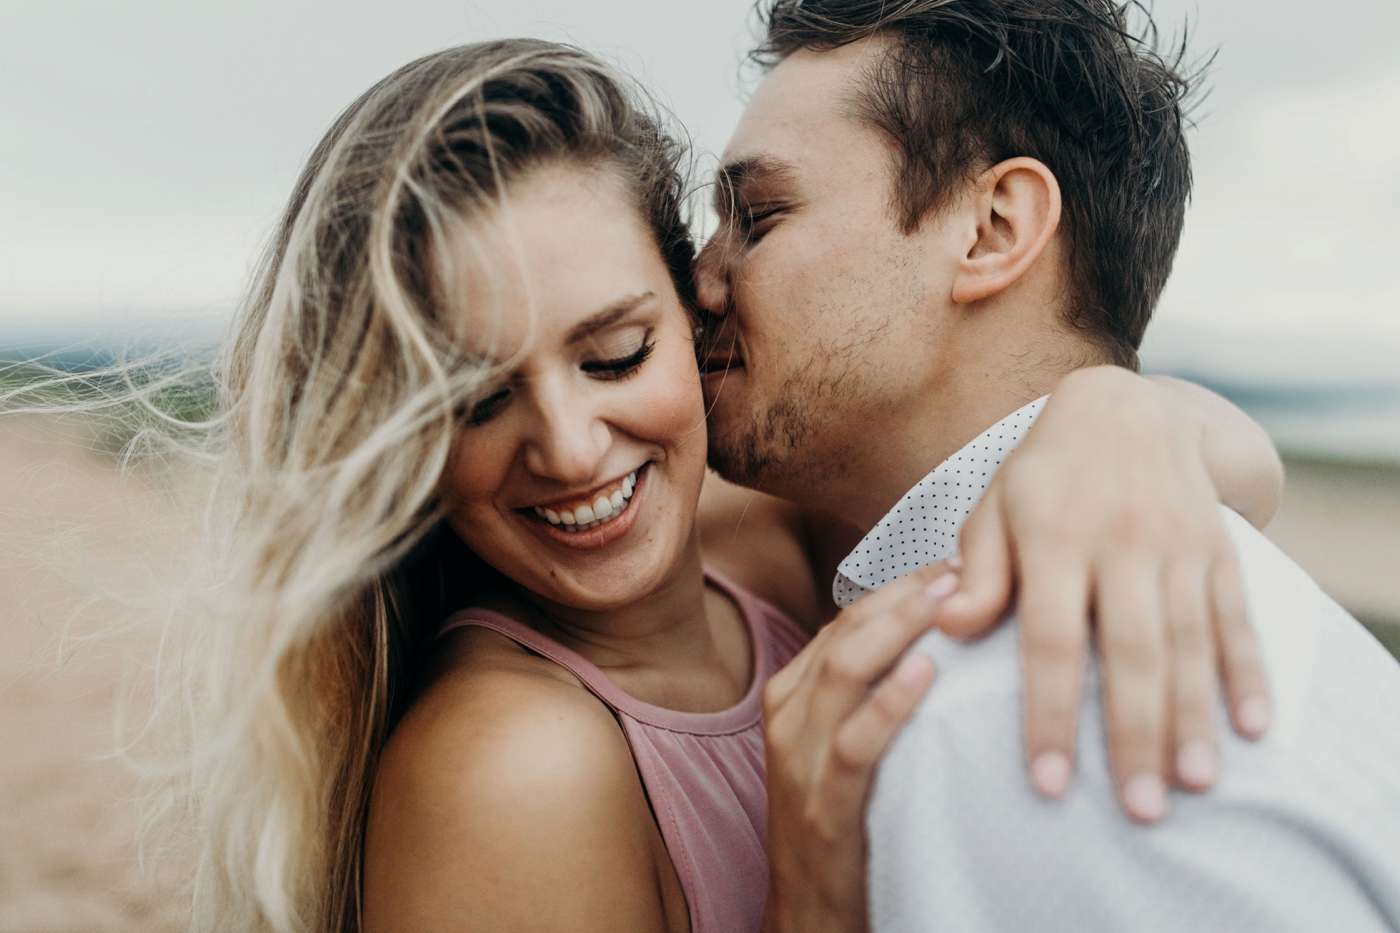 Sleeping_Bear_Dunes_Couples_Adventure_Session_Adventure_Wedding_Photographer_Hiking_with_Heels_Brett+Emily-66.jpg